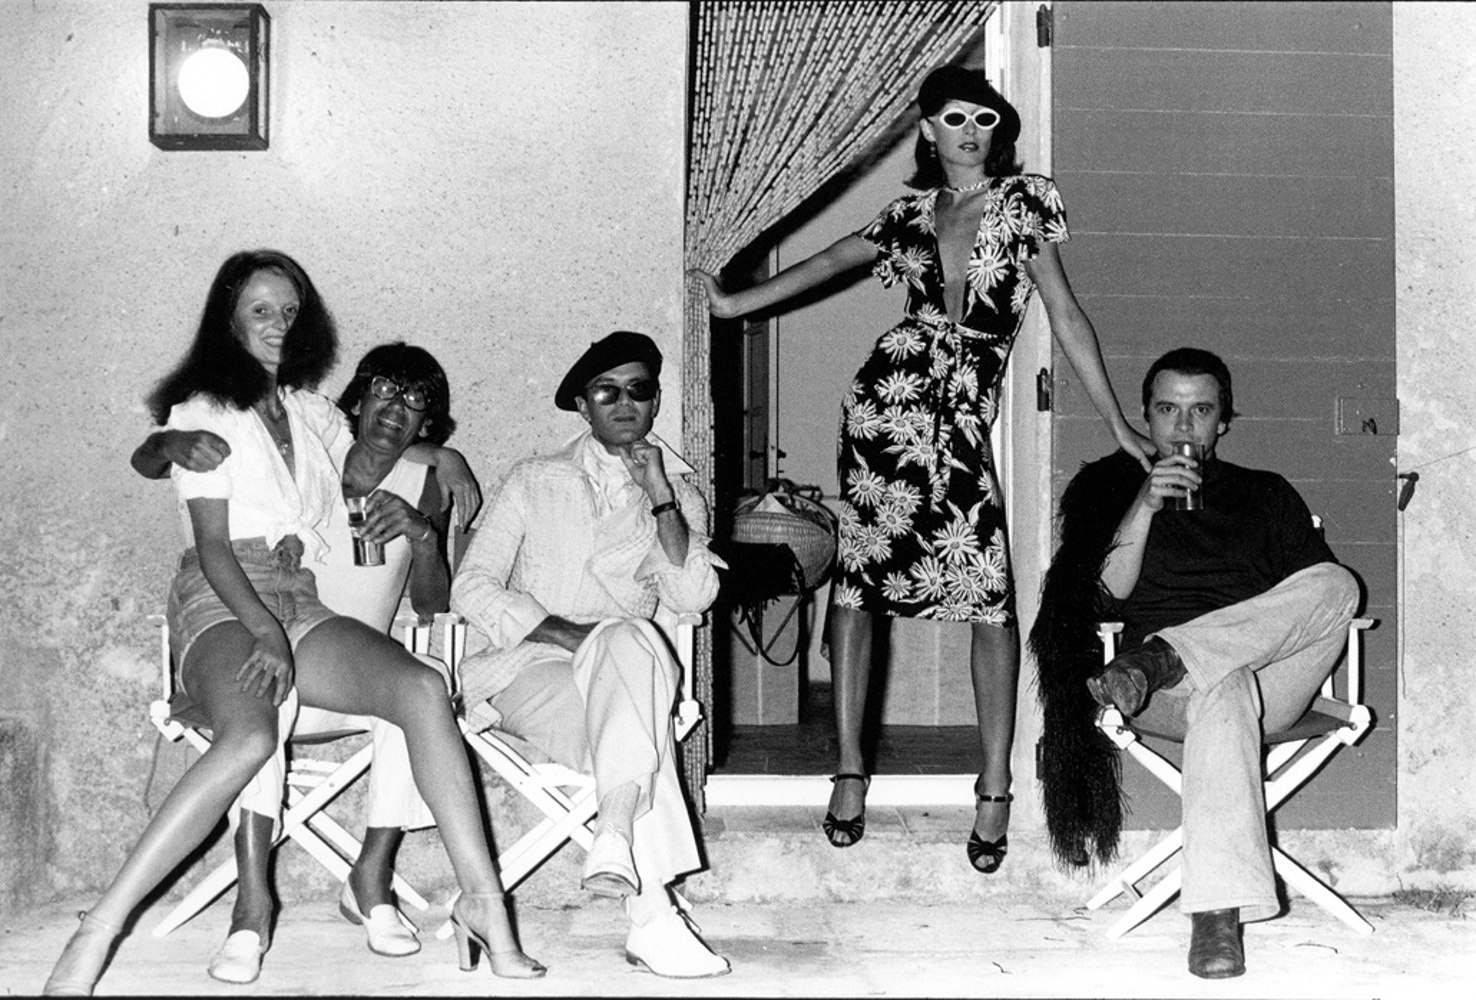 Grace Coddington, Helmut Newton, Manolo Blahnik, Anjelica Huston and David Bailey, Corsica / 1973